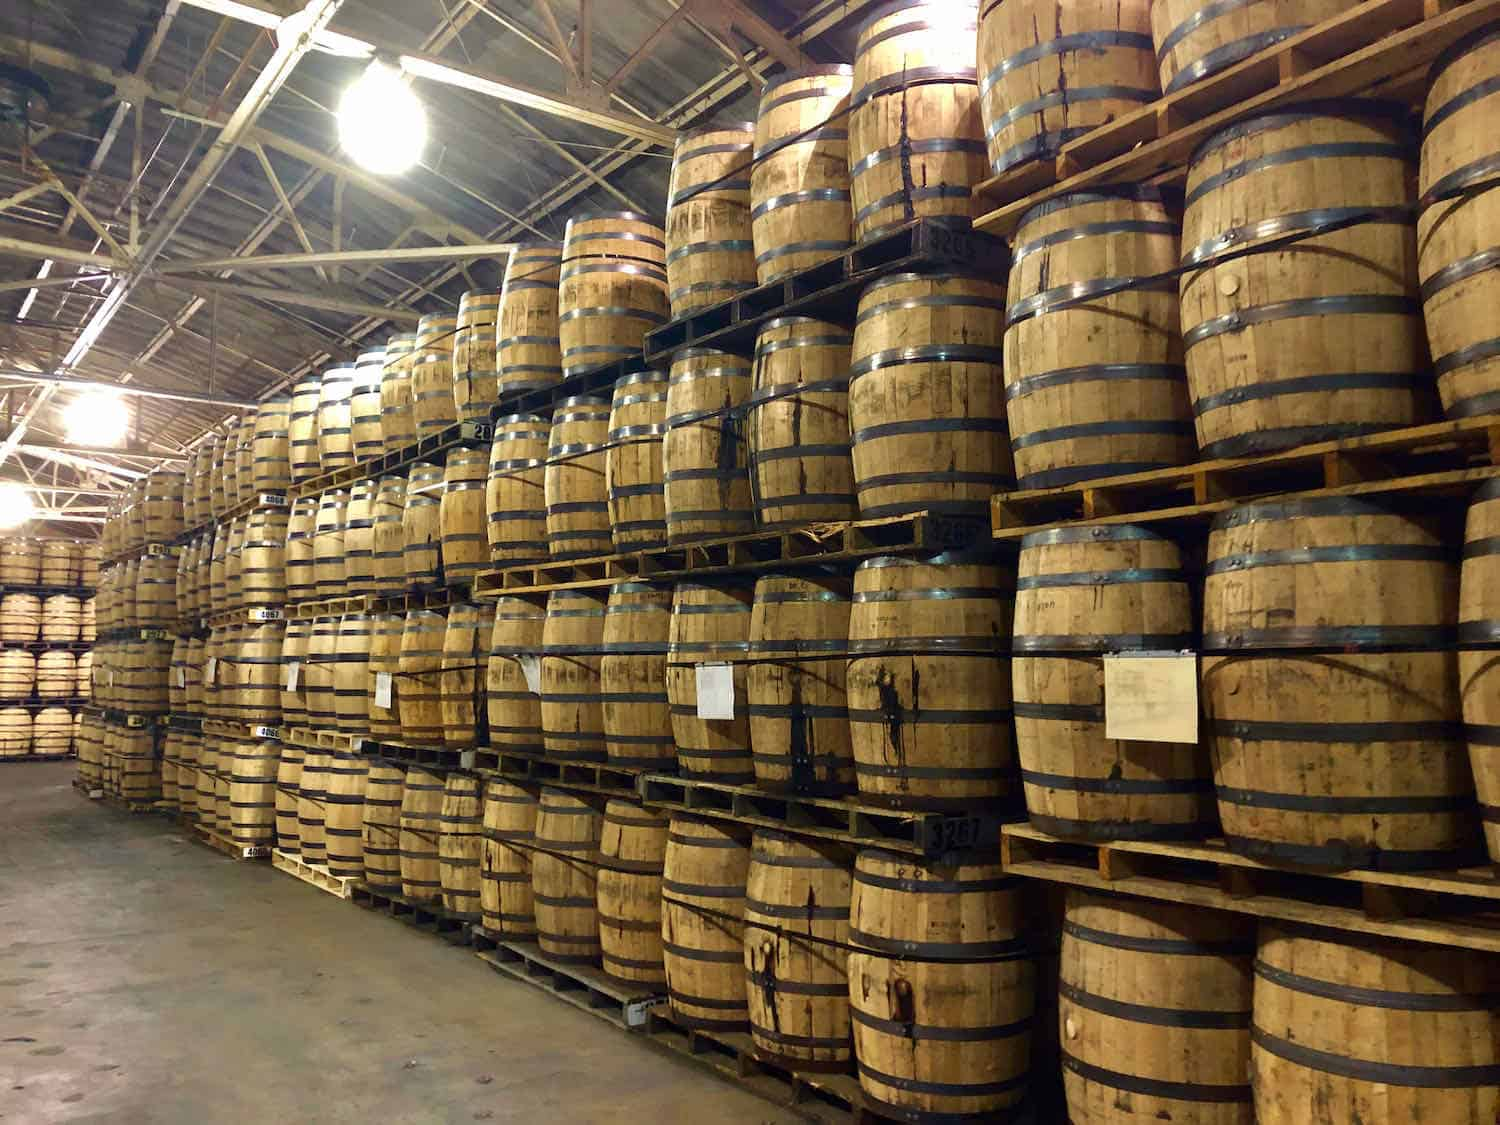 Stacks of whiskey barrels at a distillery.